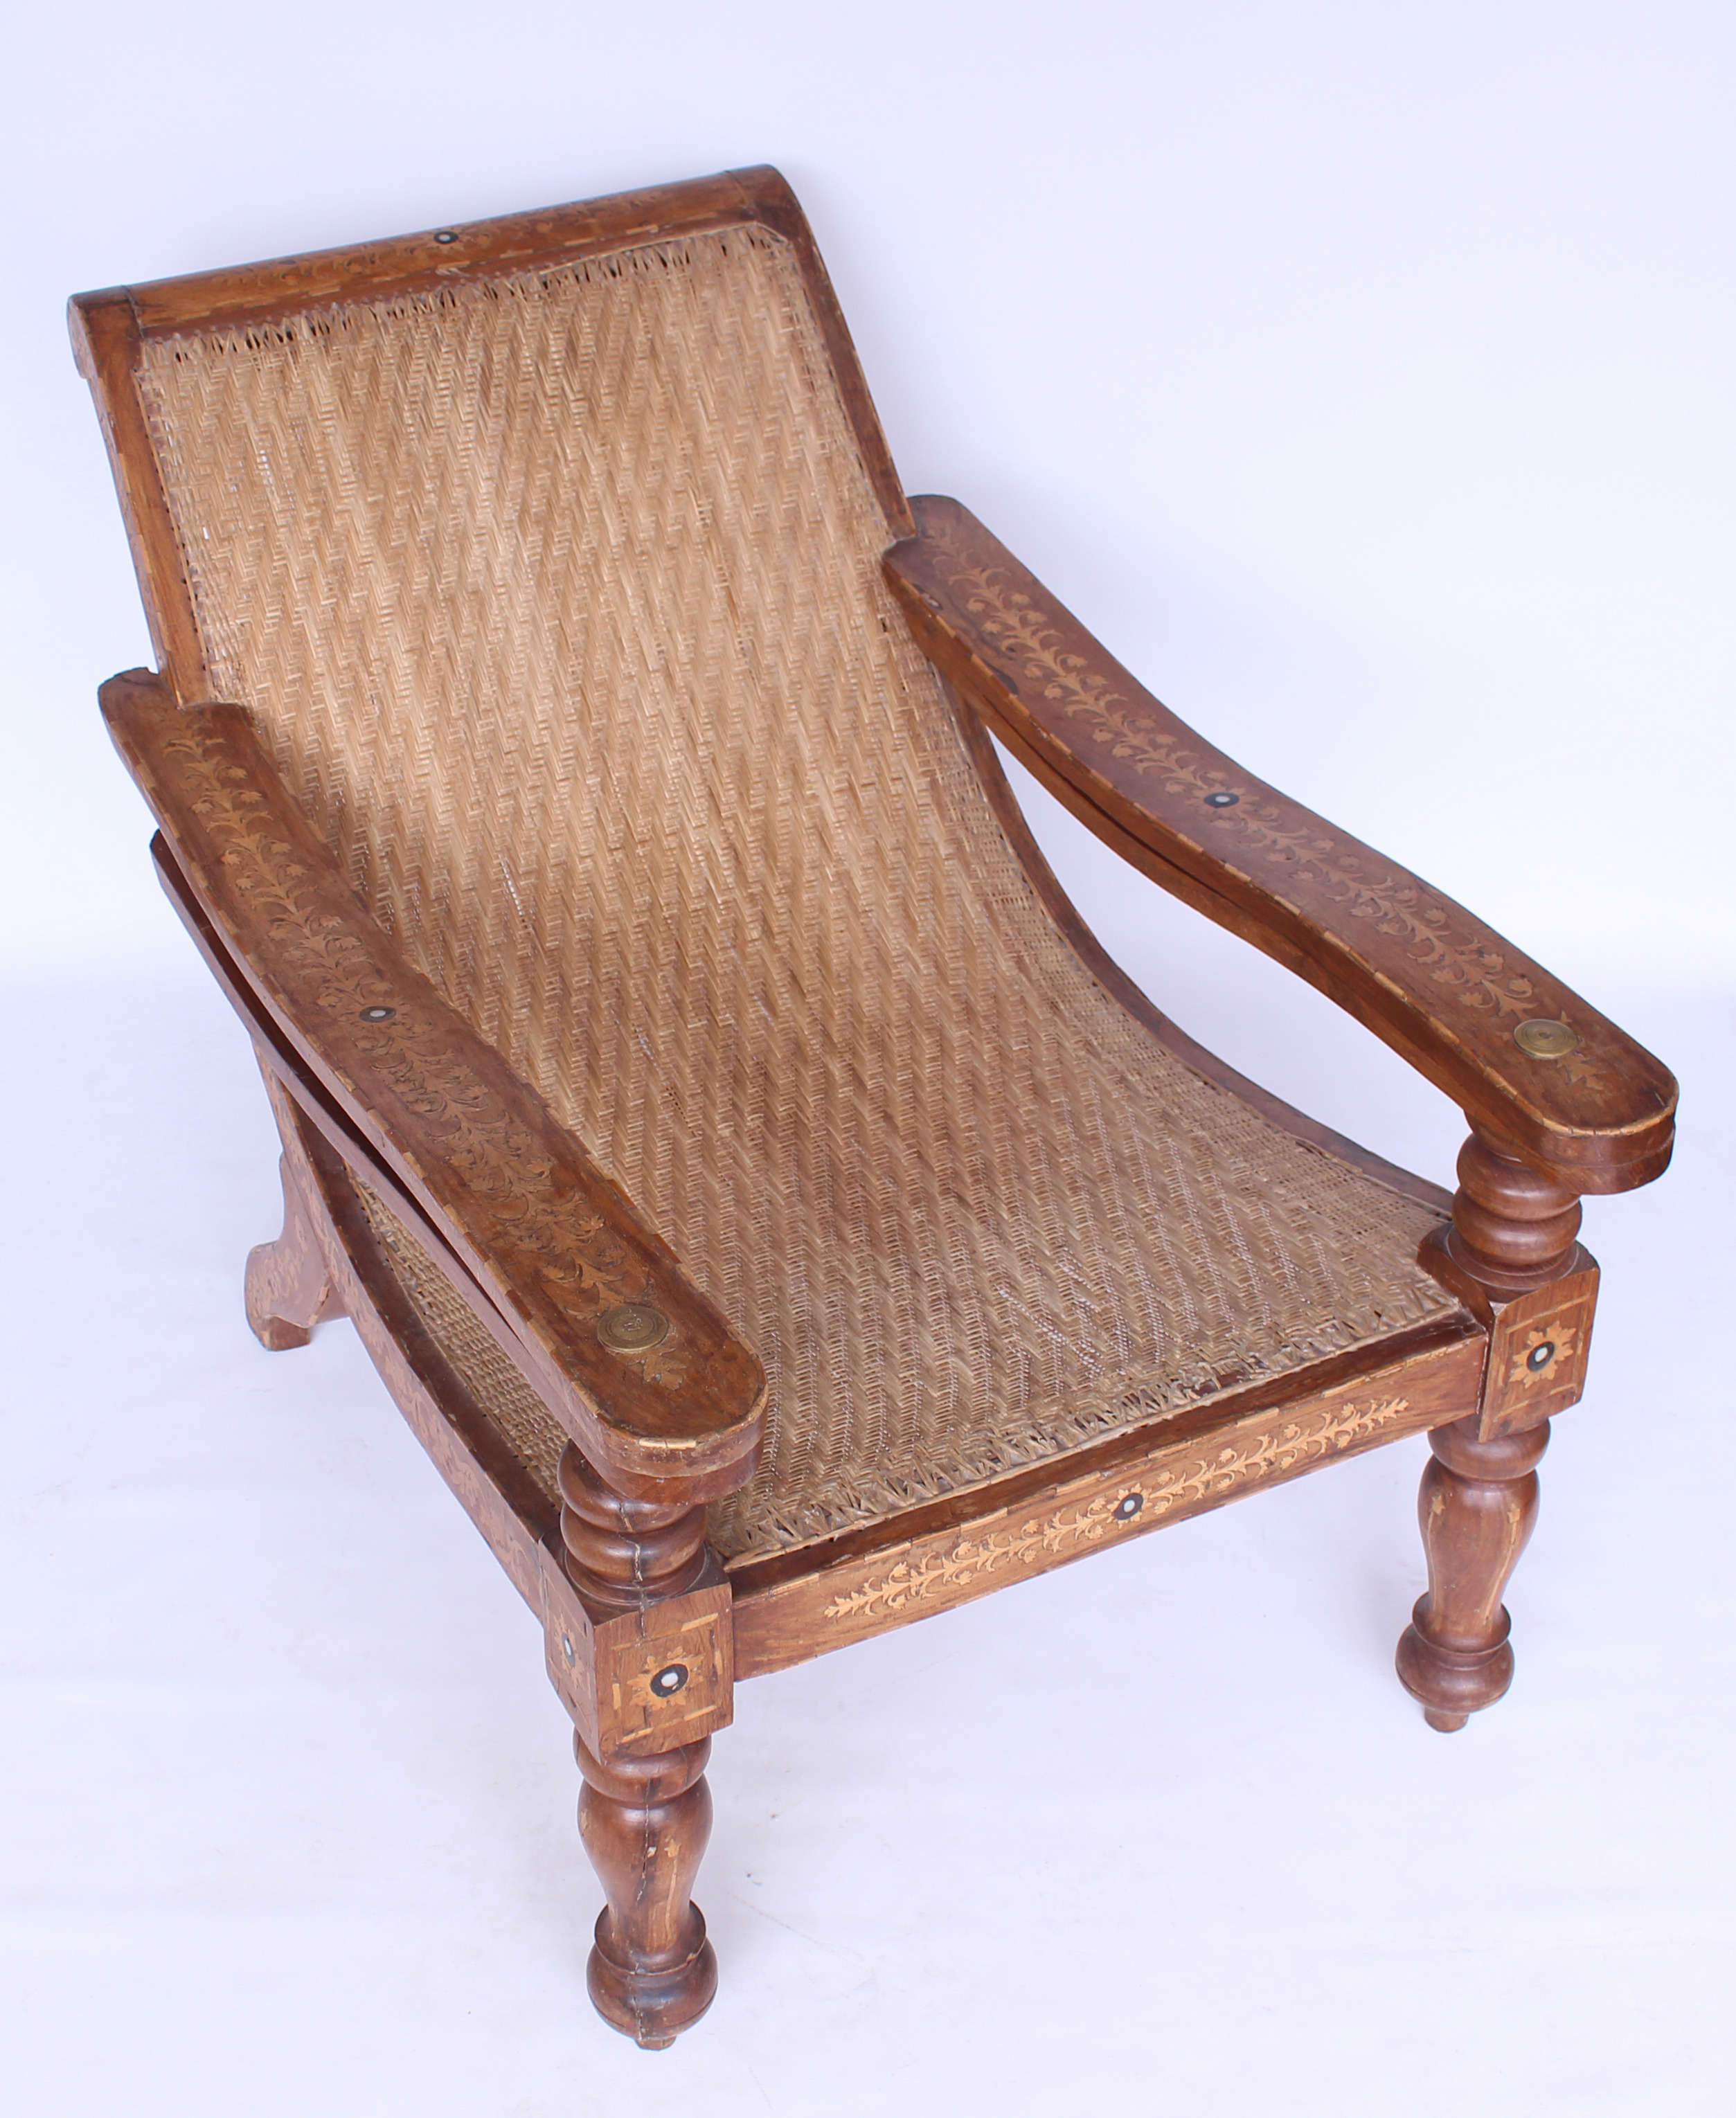 19th century antique colonial plantation large cane and teak chair vintage 0